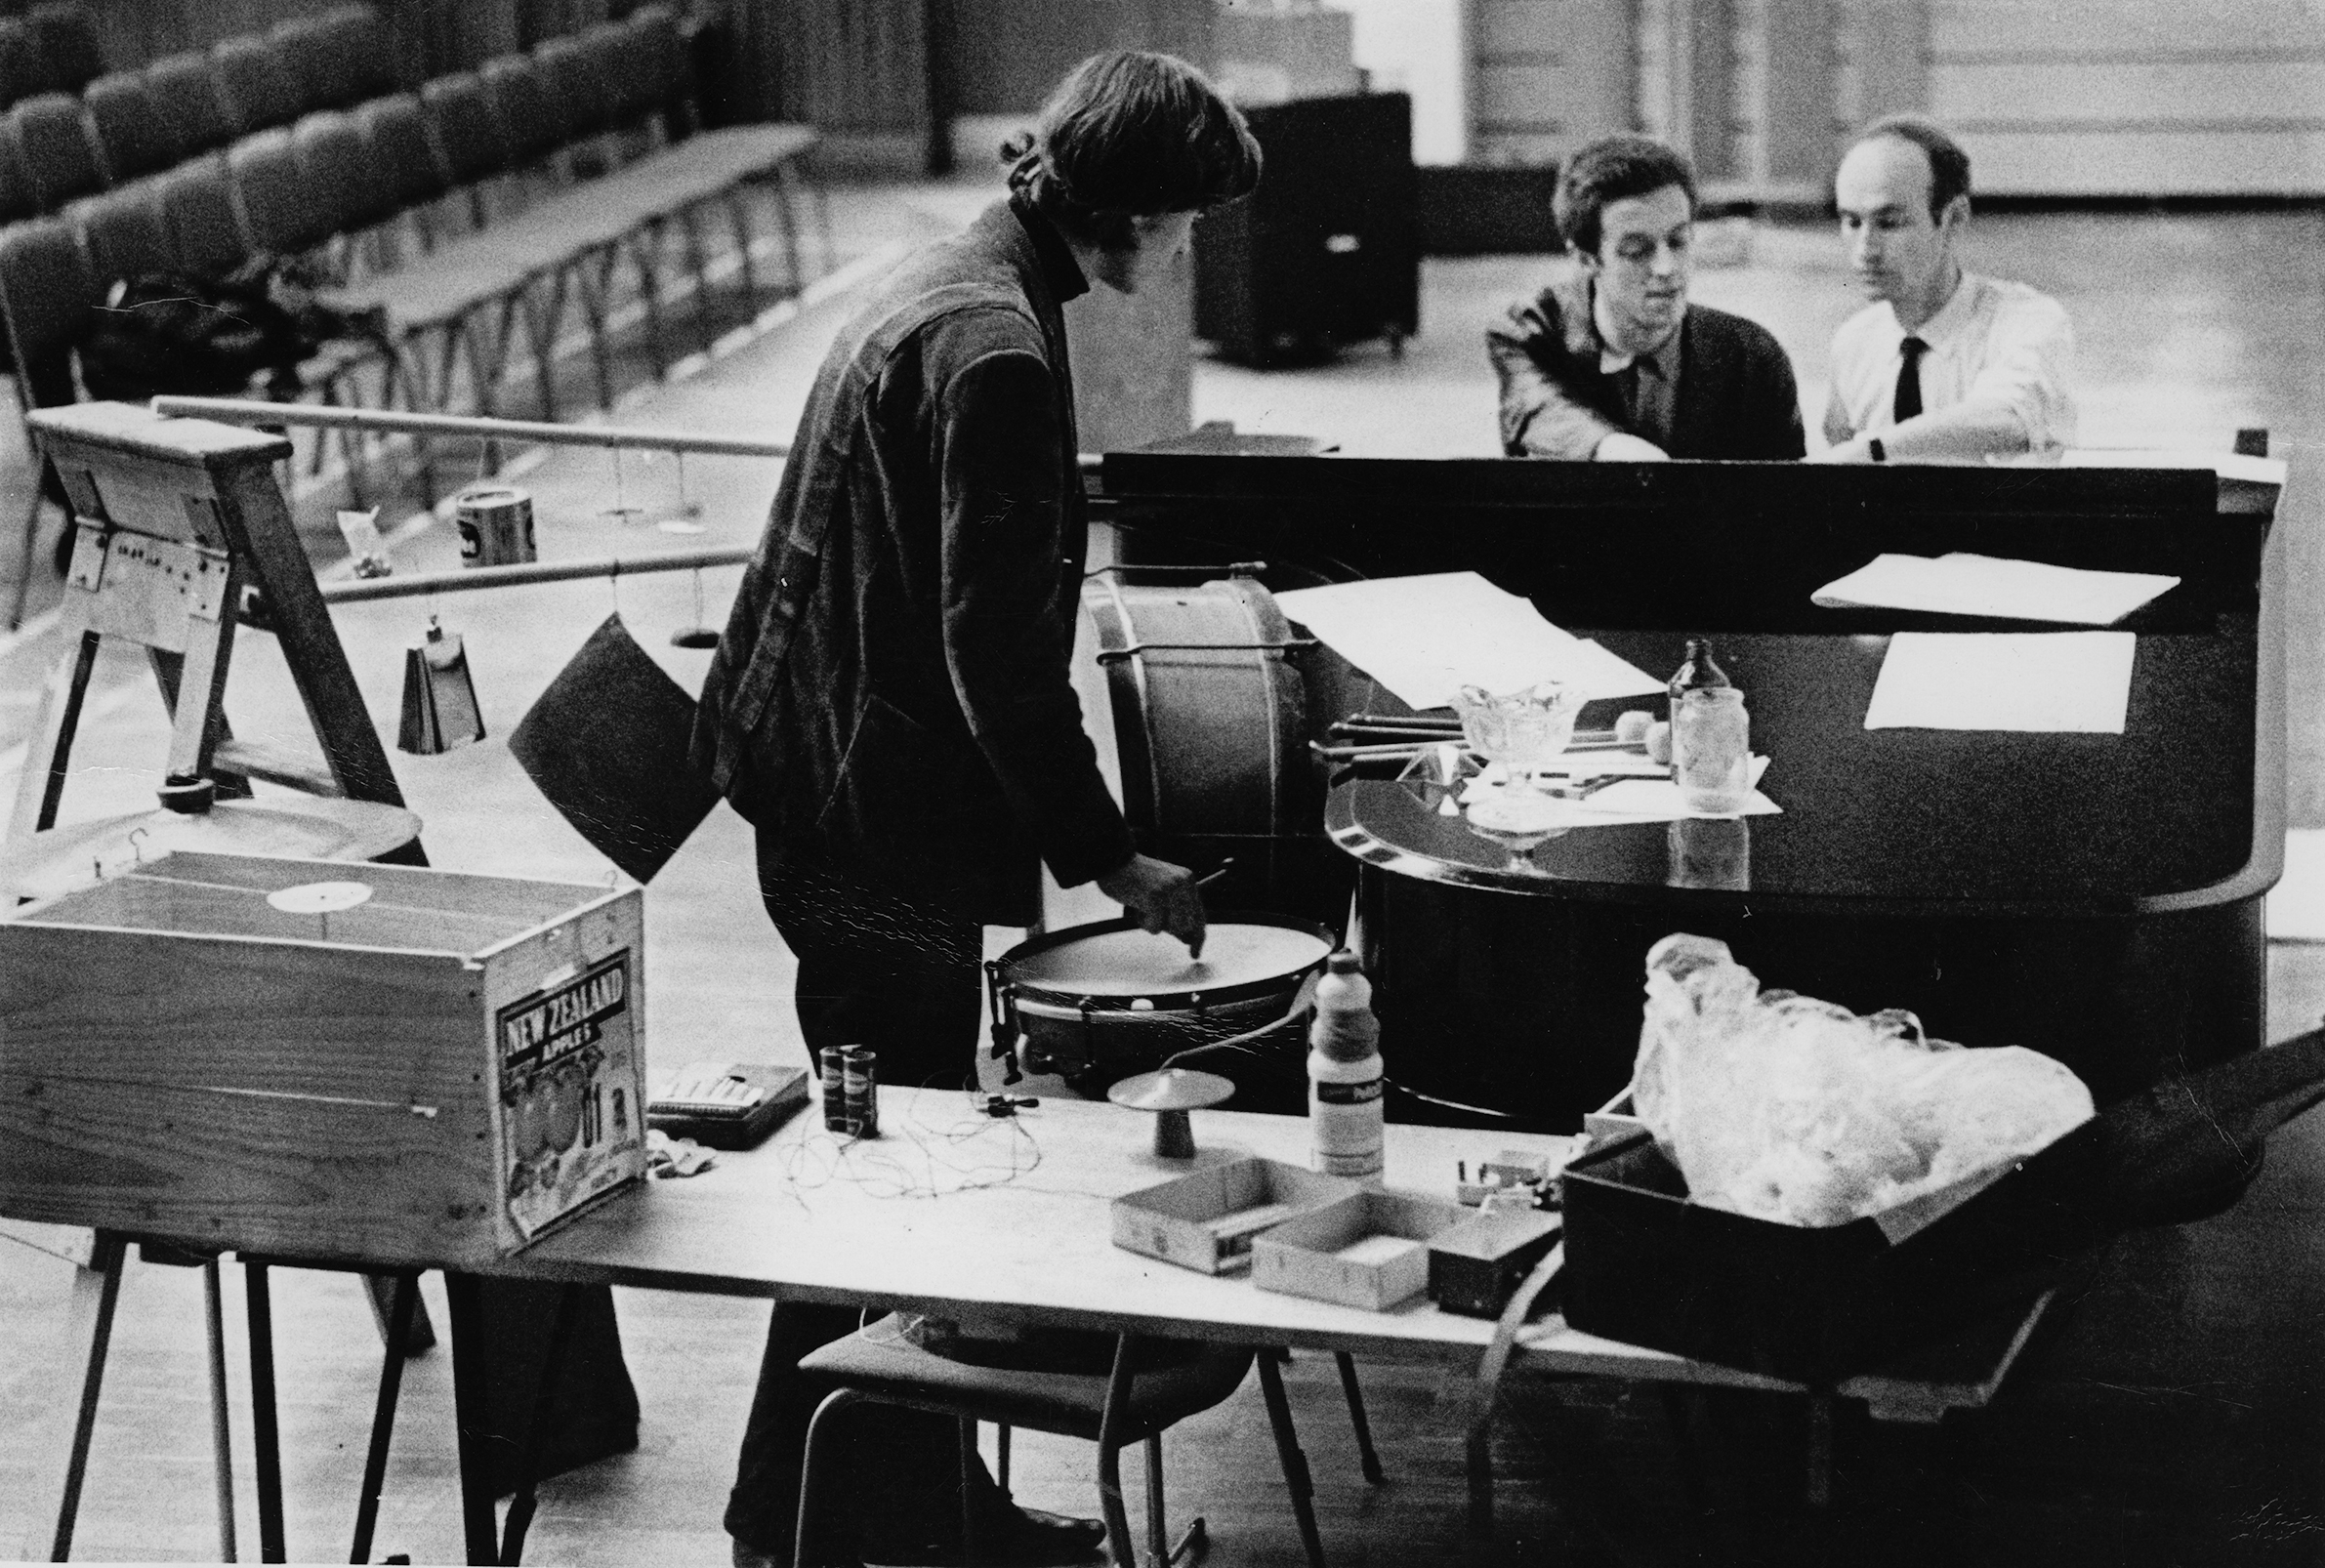 Christopher Hobbes, Cornelius Cardew, CW, London, International Students Center, 1968. Preparing for concert.